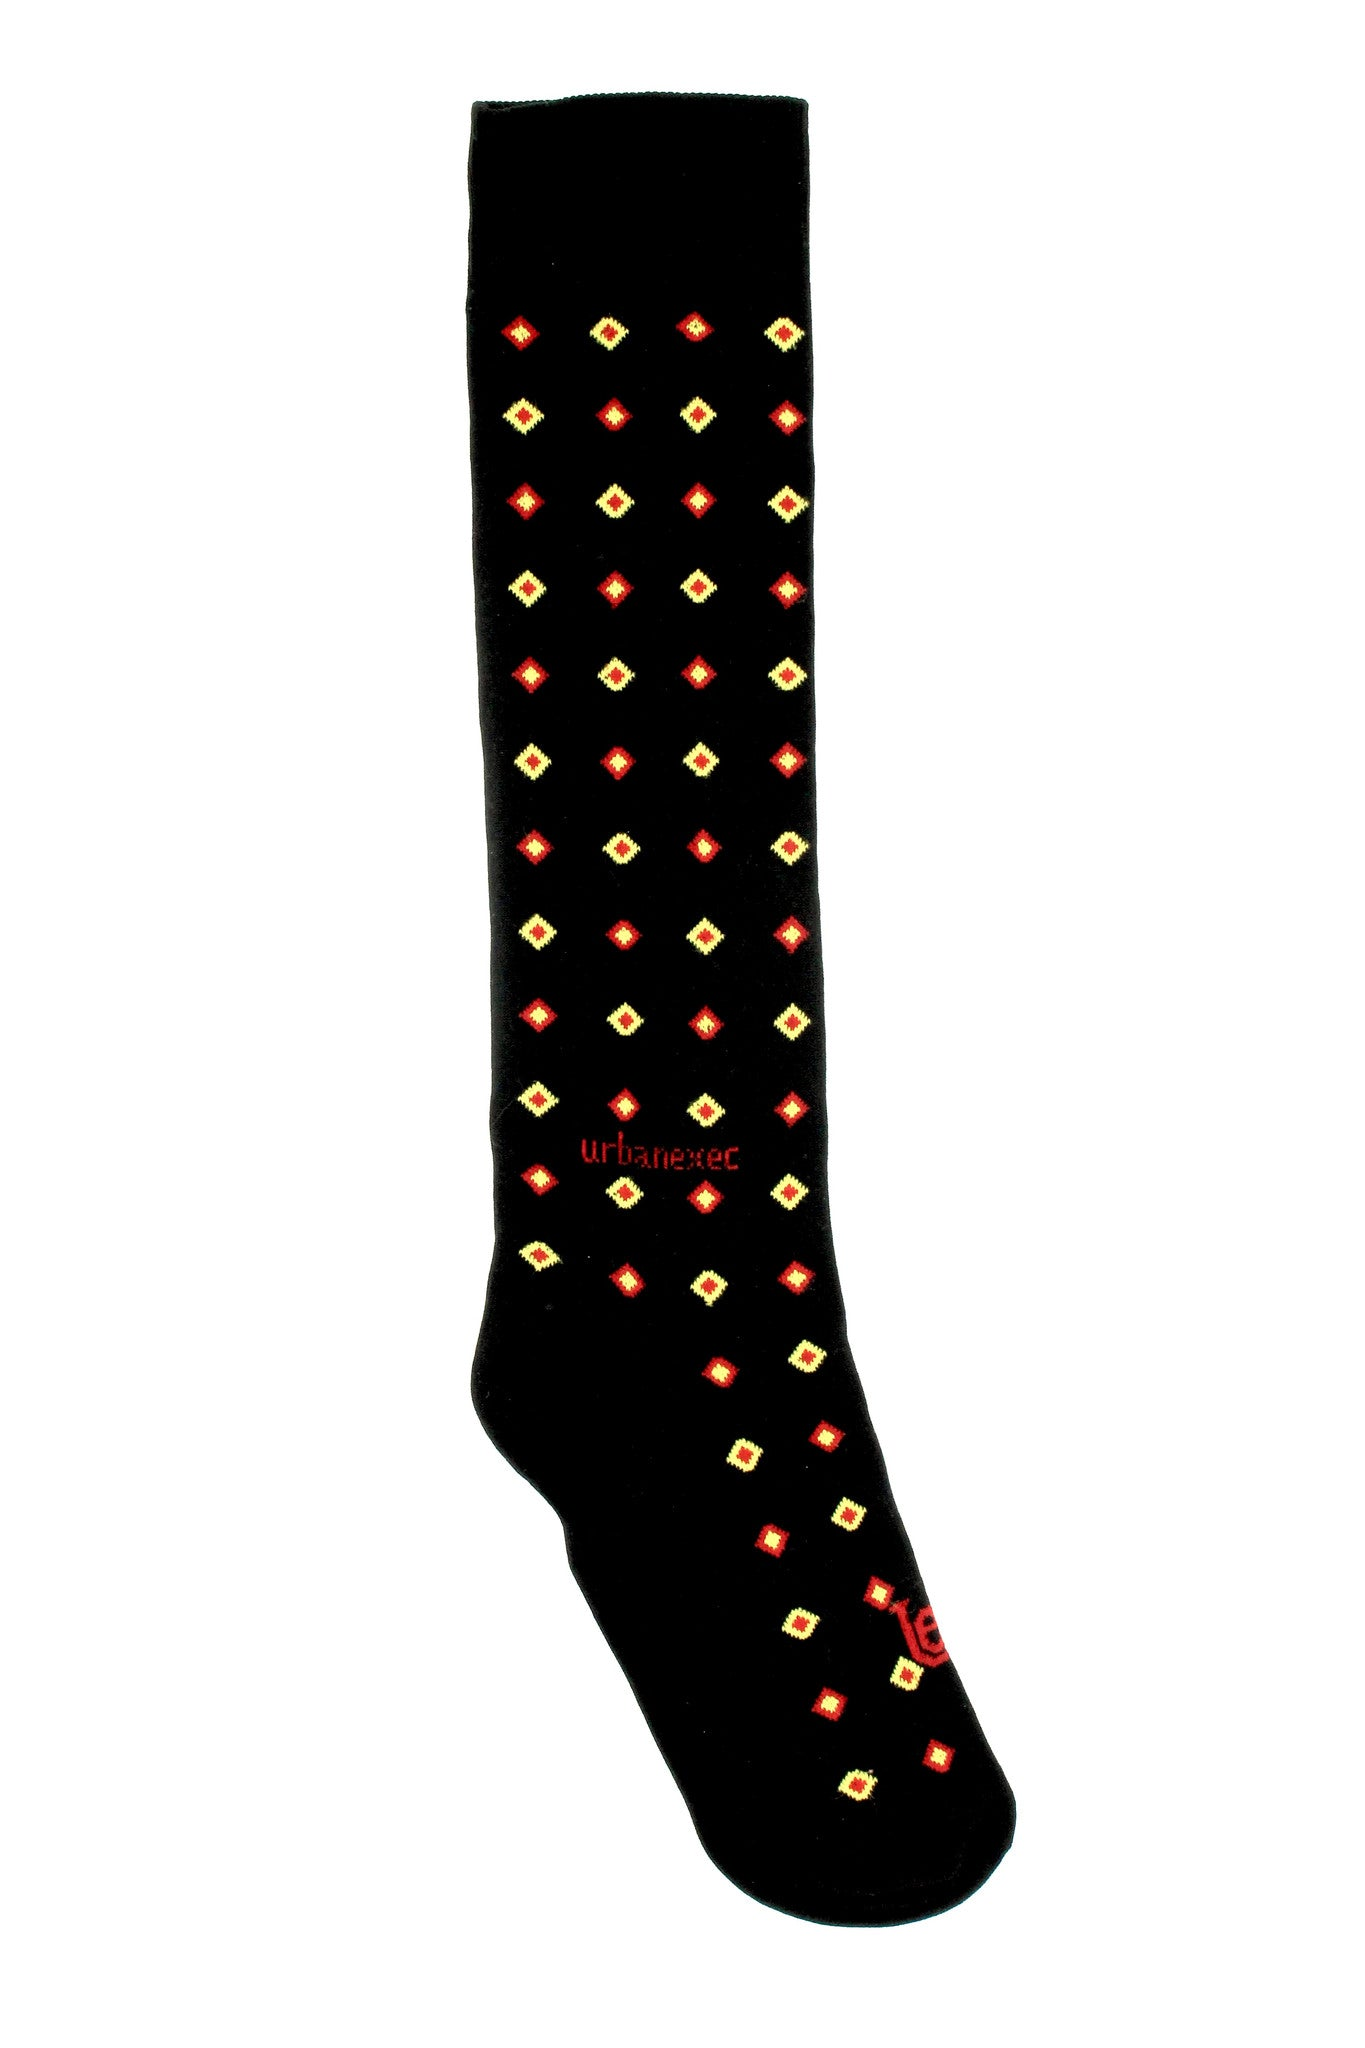 Men's Socks Double Diamond GameDay Black with Cardinal and Gold